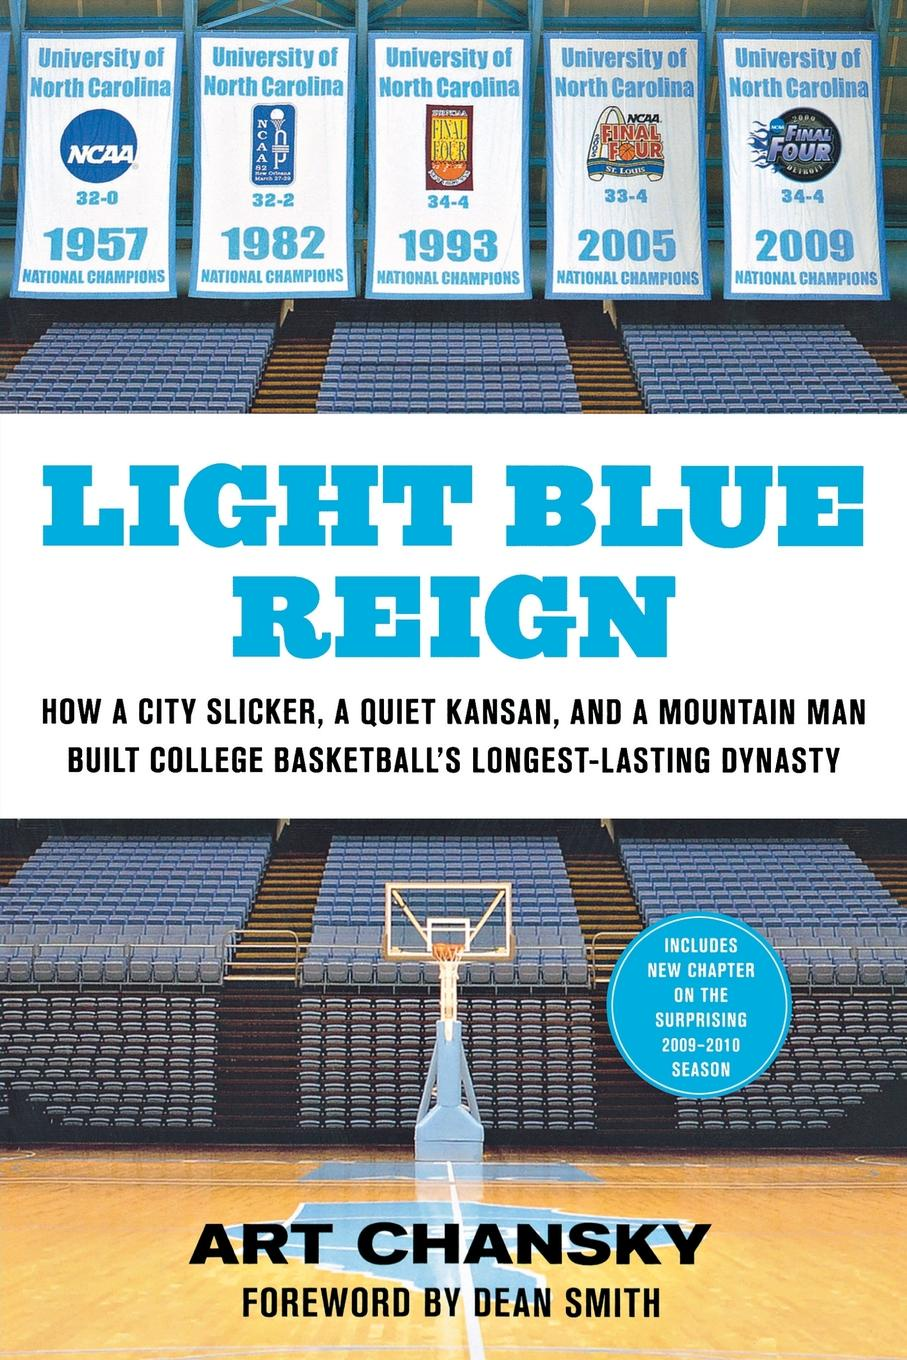 Art Chansky Light Blue Reign. How a City Slicker, a Quiet Kansan, and a Mountain Man Built College Basketball's Longest-Lasting Dynasty coldplayer is 428 ultra quiet high speed cooling pad w 4 fans for 15 laptops light blue